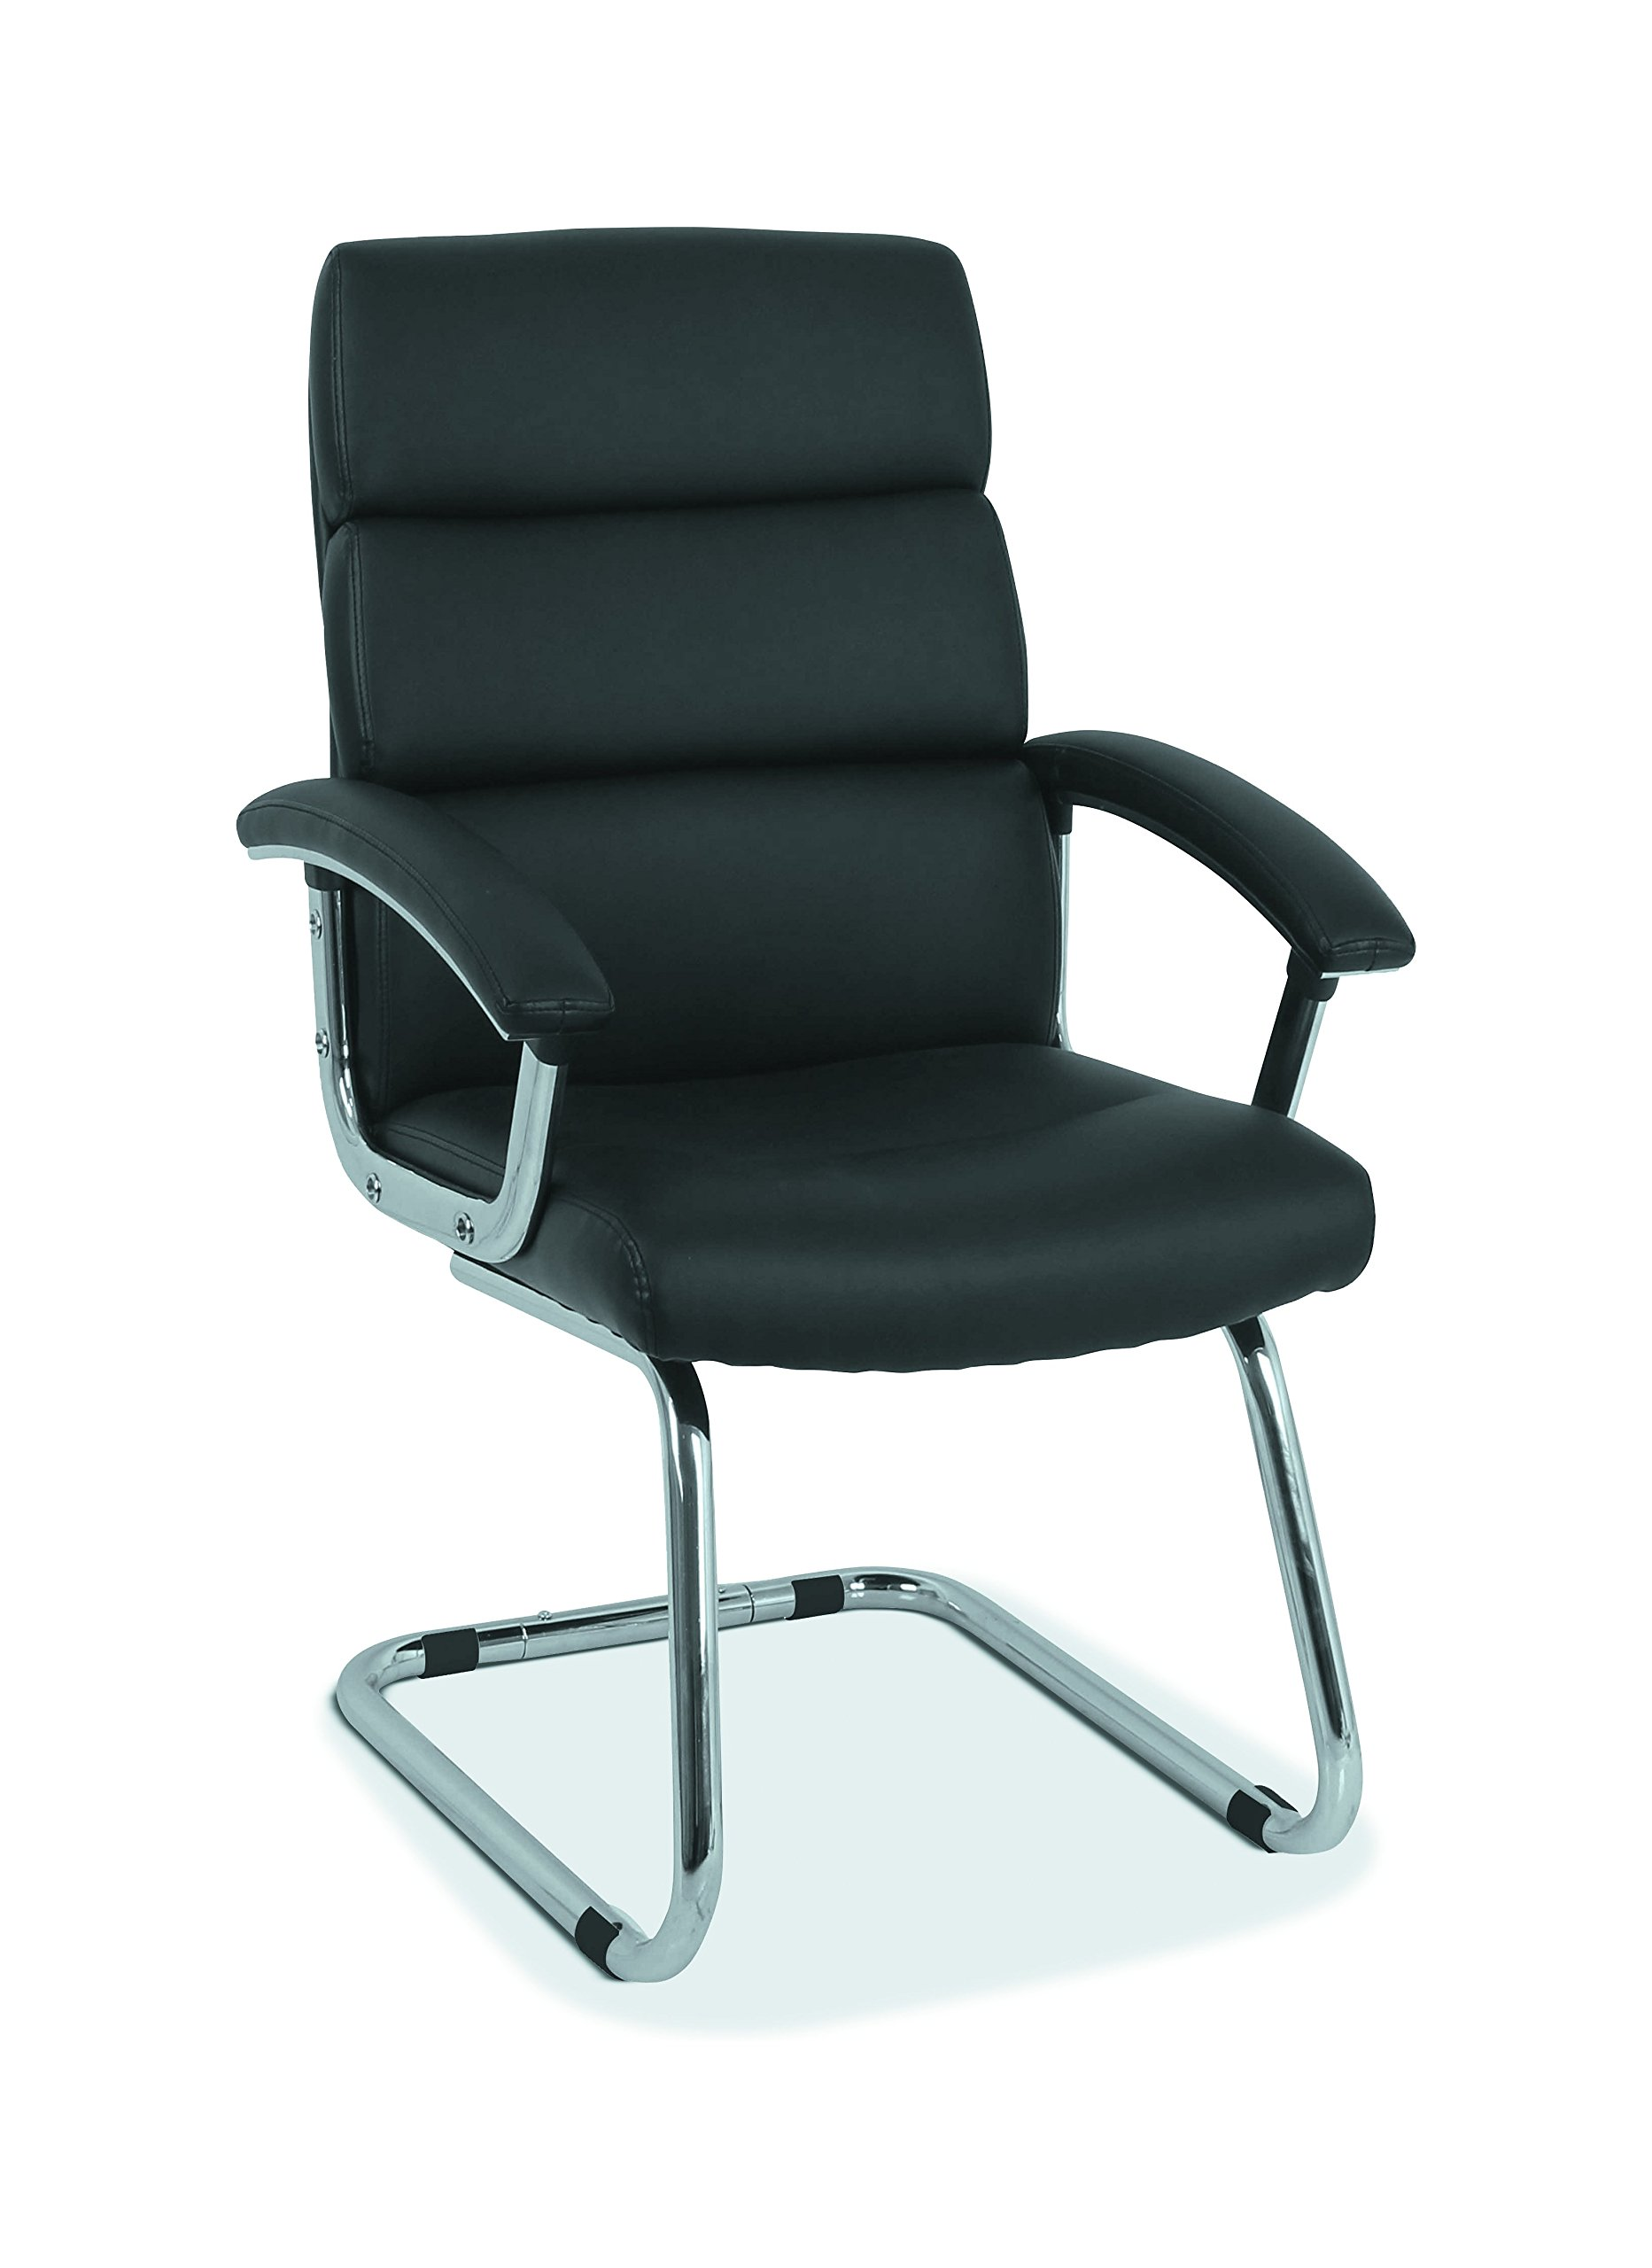 HON Traction High-Back Modern Guest Chair - Leather Reception Chair, Black (HVL102)